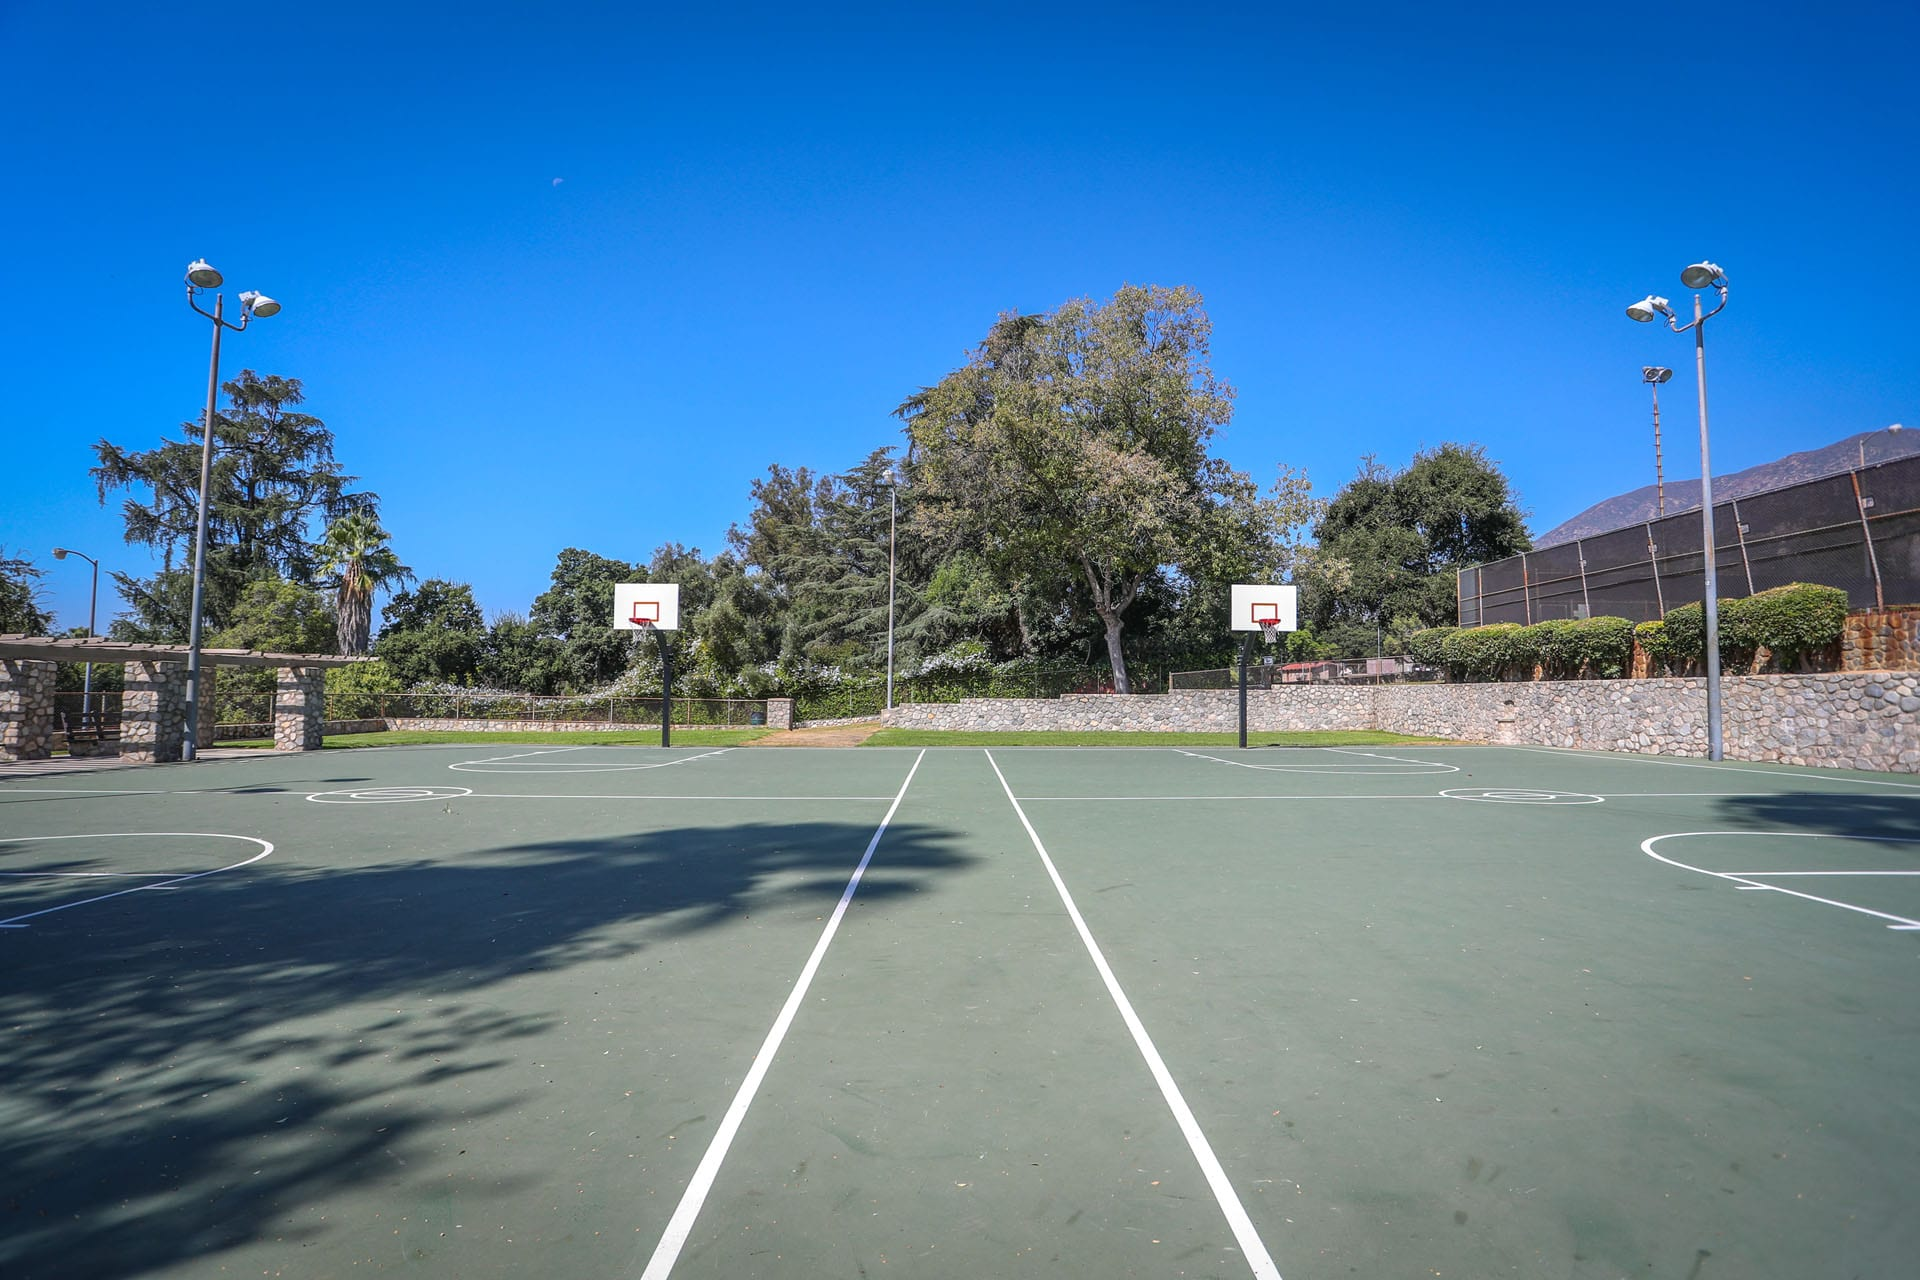 Outdoor basketball courts